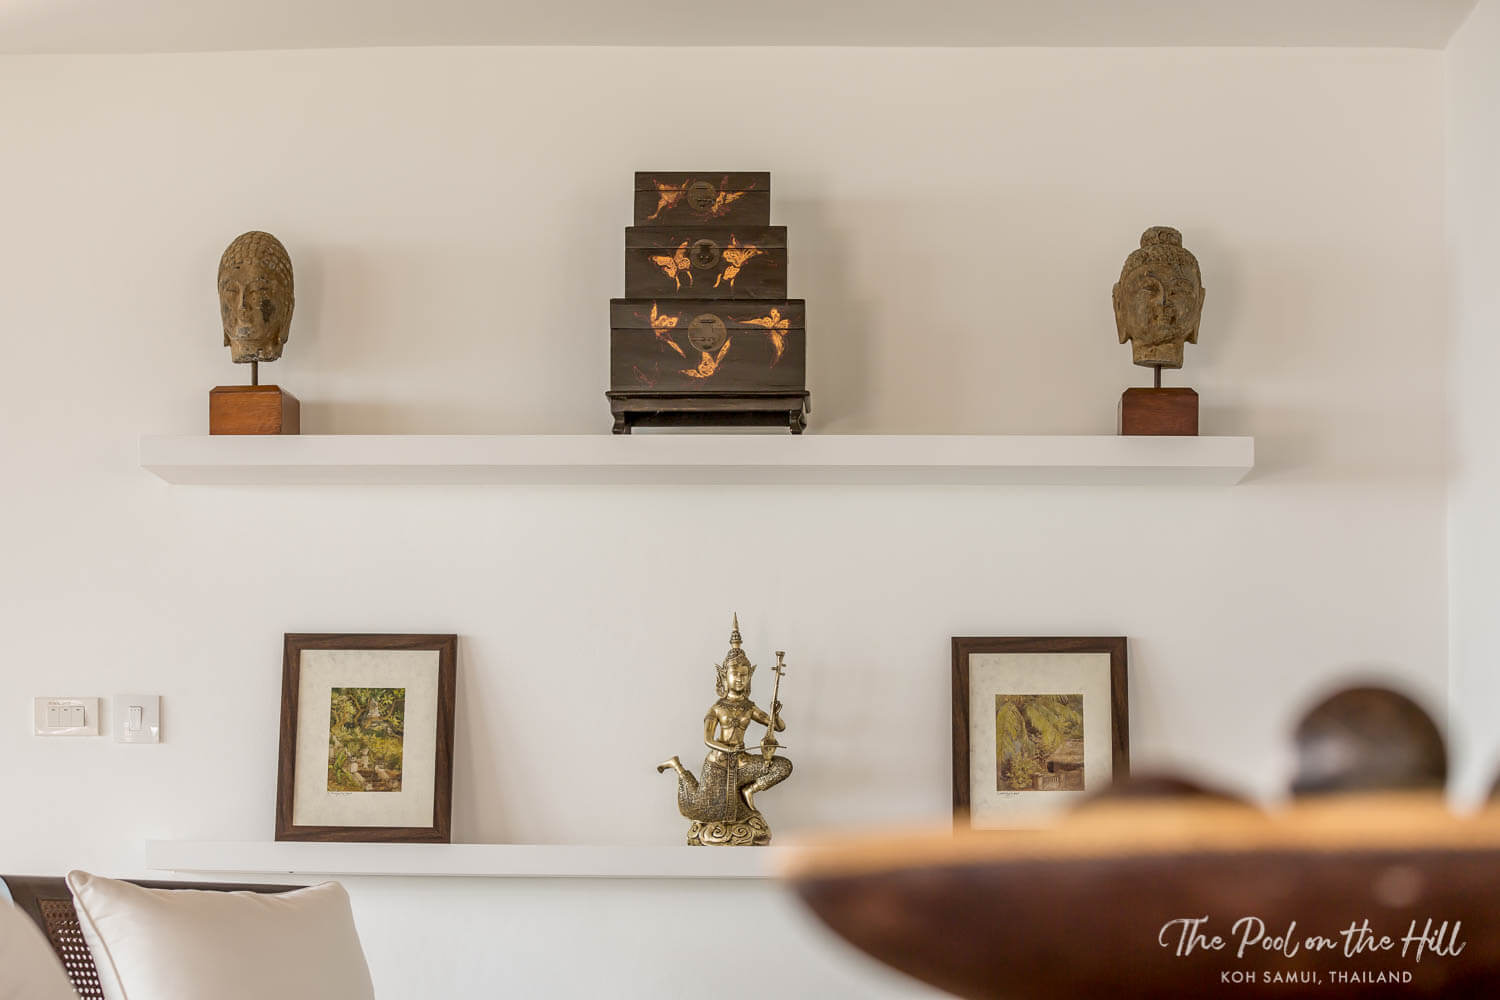 Thailand villa rental: Tour The Pool on the Hill's open-plan villa kitchen – Thai and Chinese antiques decorate the shelves in the open-plan kitchen and dining area.